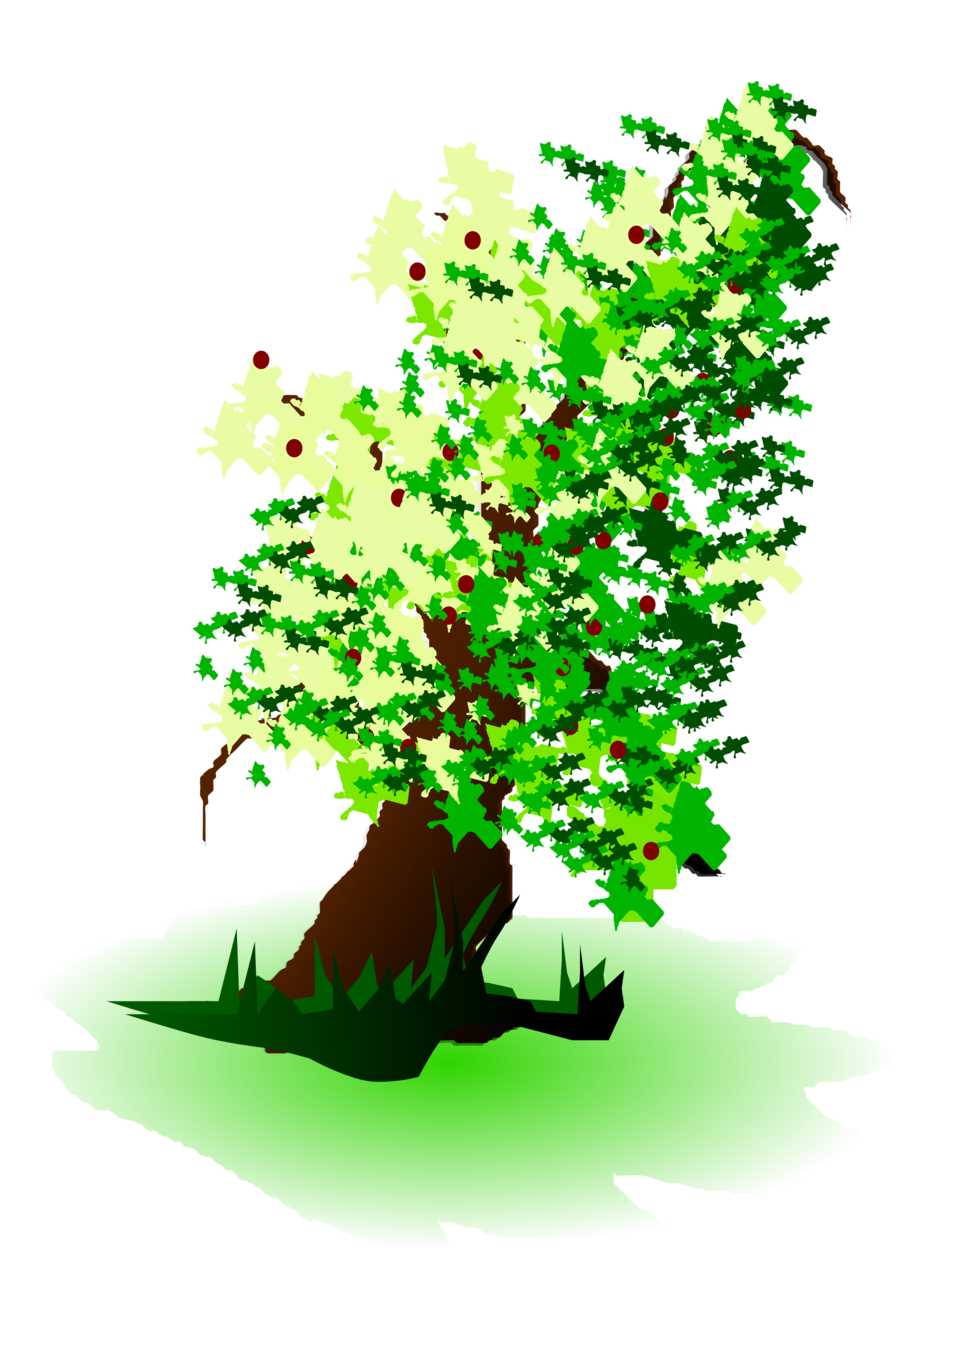 Green apple tree clipart clipart free download Public Domain Clip Art Image | apple tree oil painting | ID ... clipart free download